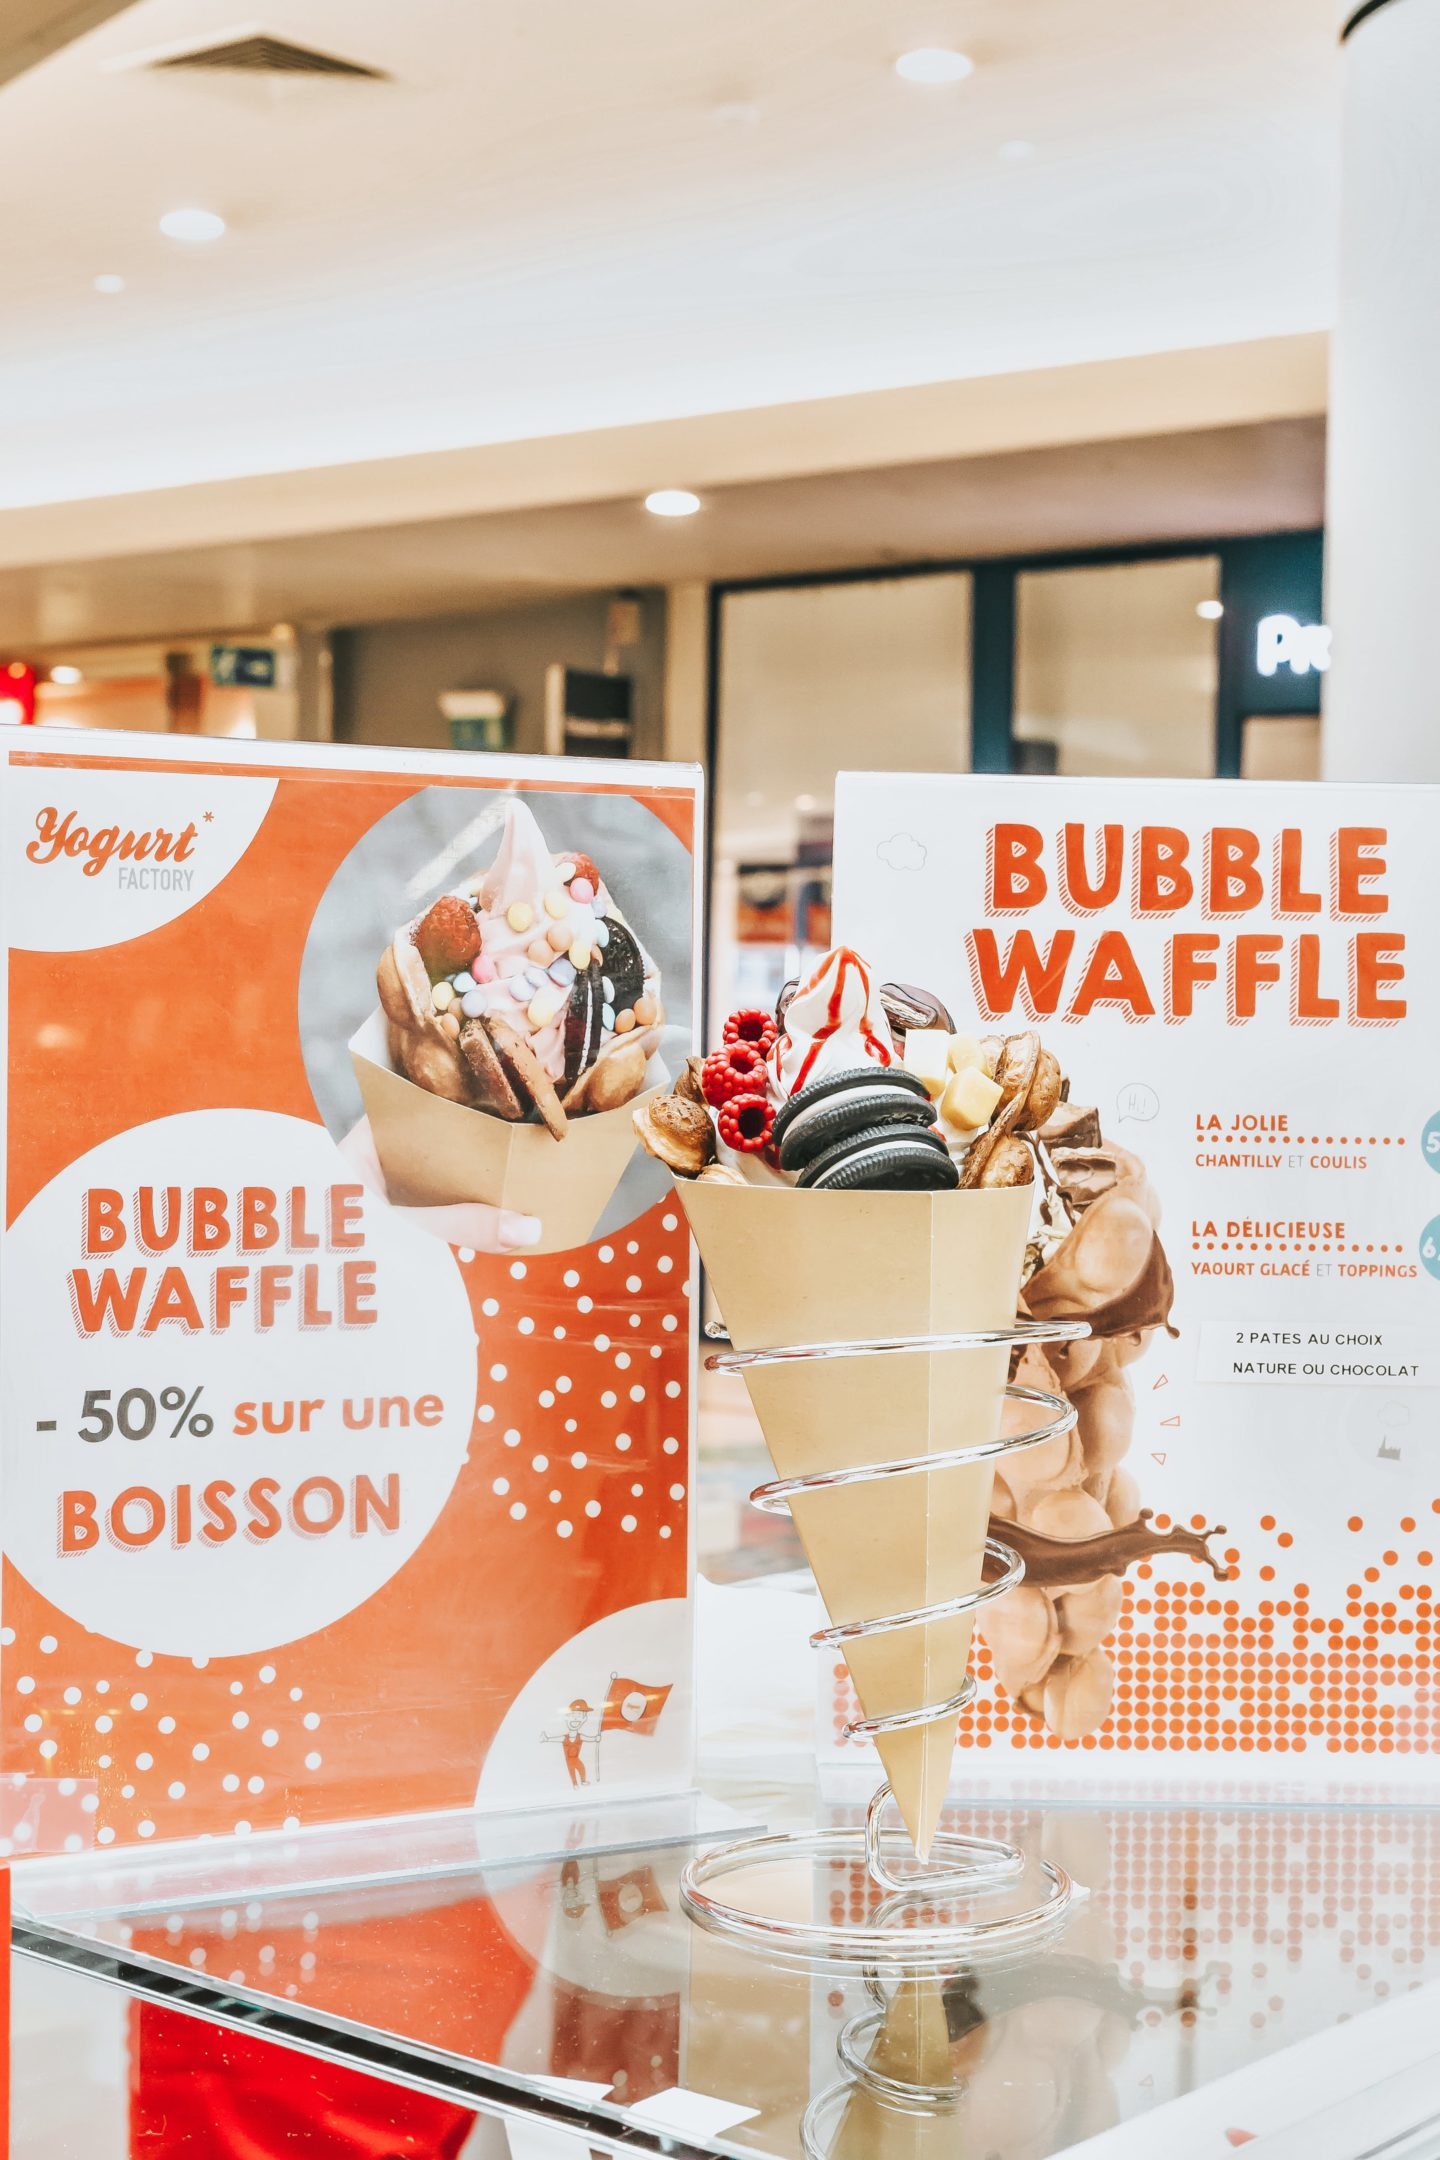 YOGURT FACTORY, YAOURT GLACÉ, BUBBLE WAFFLE, BORDEAUX